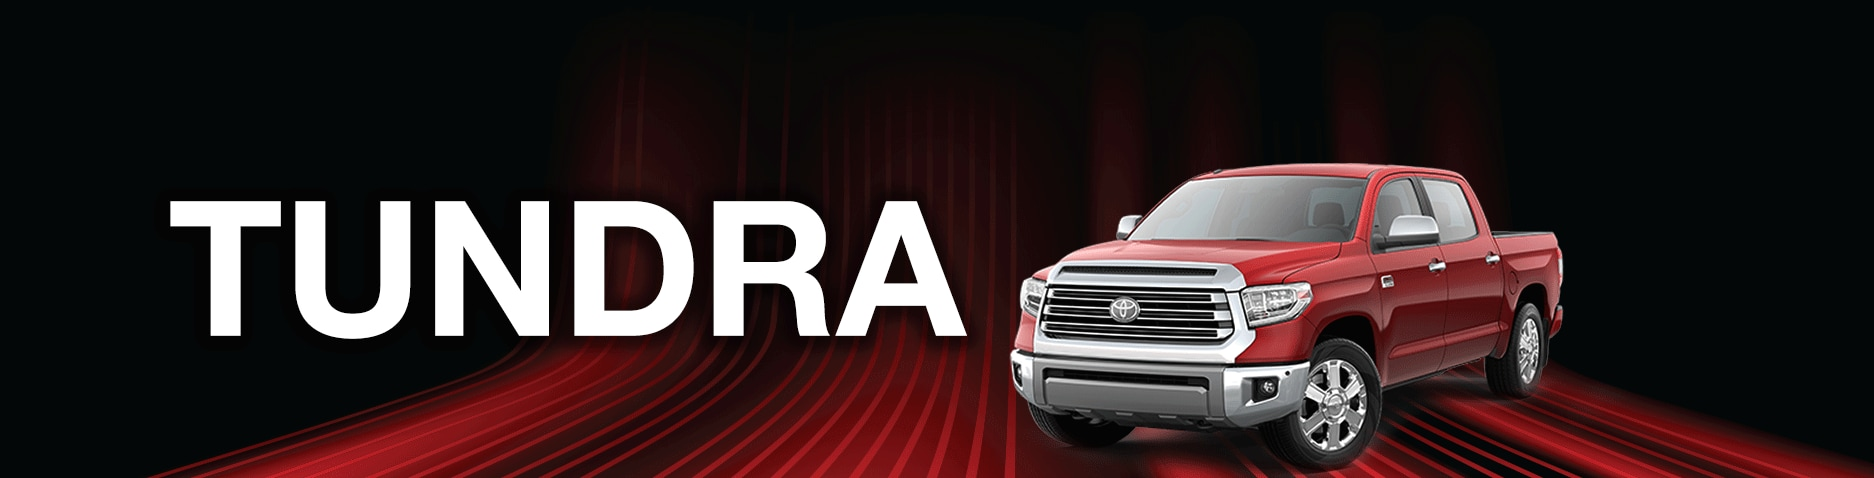 2019 Toyota Tundra Review and Comparison in Albuquerque, NM